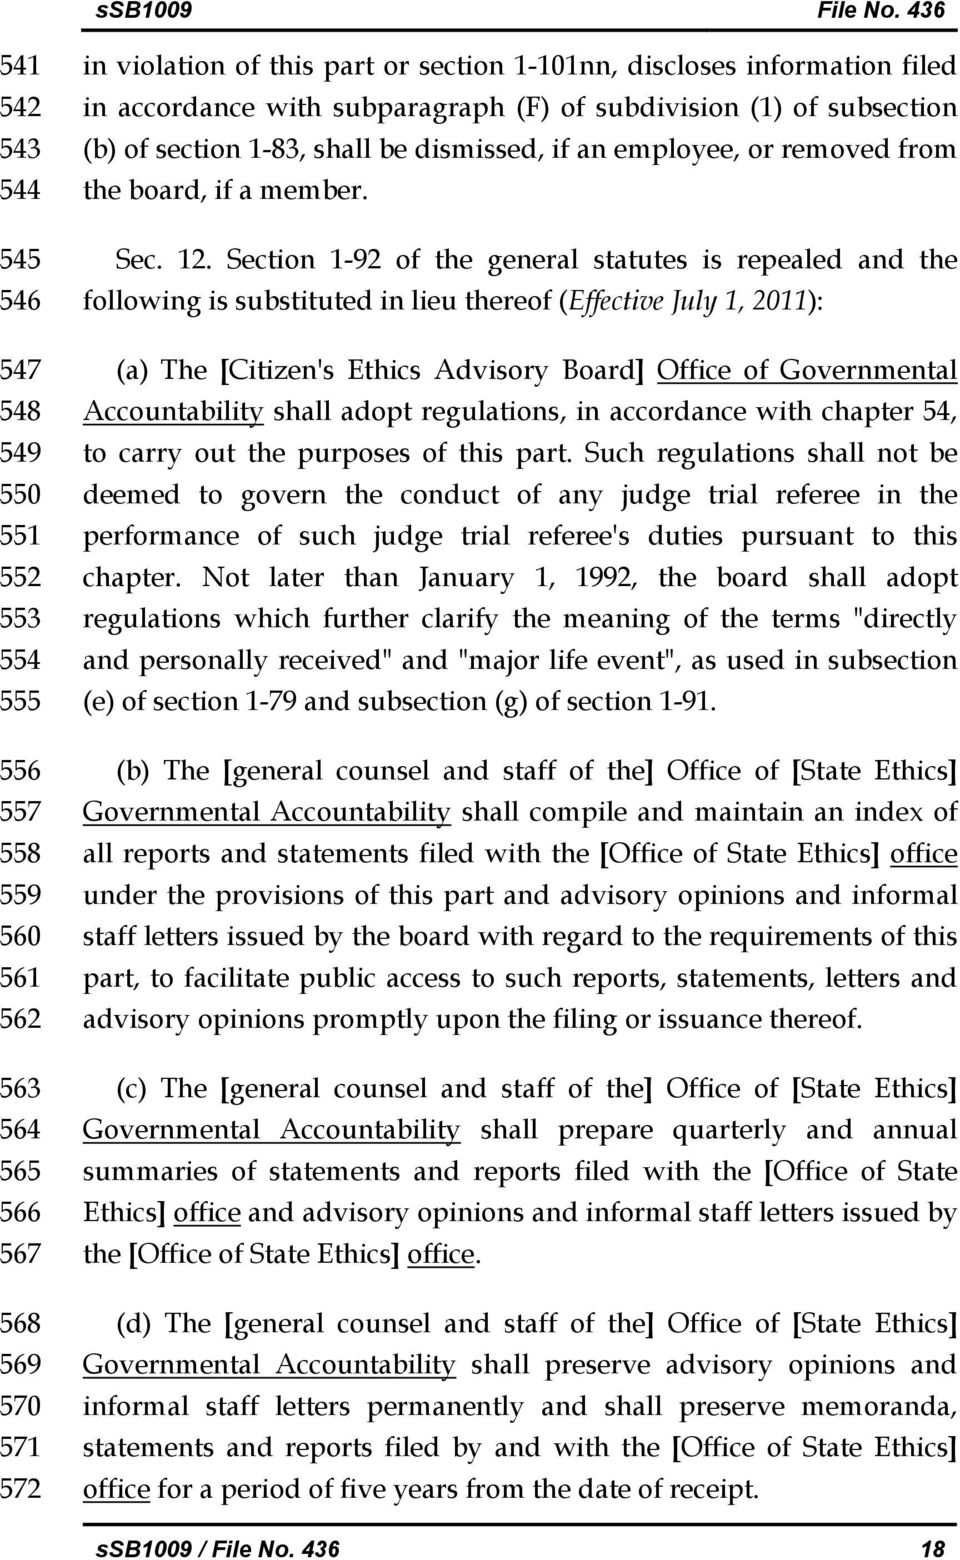 Section 1-92 of the general statutes is repealed and the following is substituted in lieu thereof (Effective July 1, 2011): (a) The [Citizen's Ethics Advisory Board] Office of Governmental